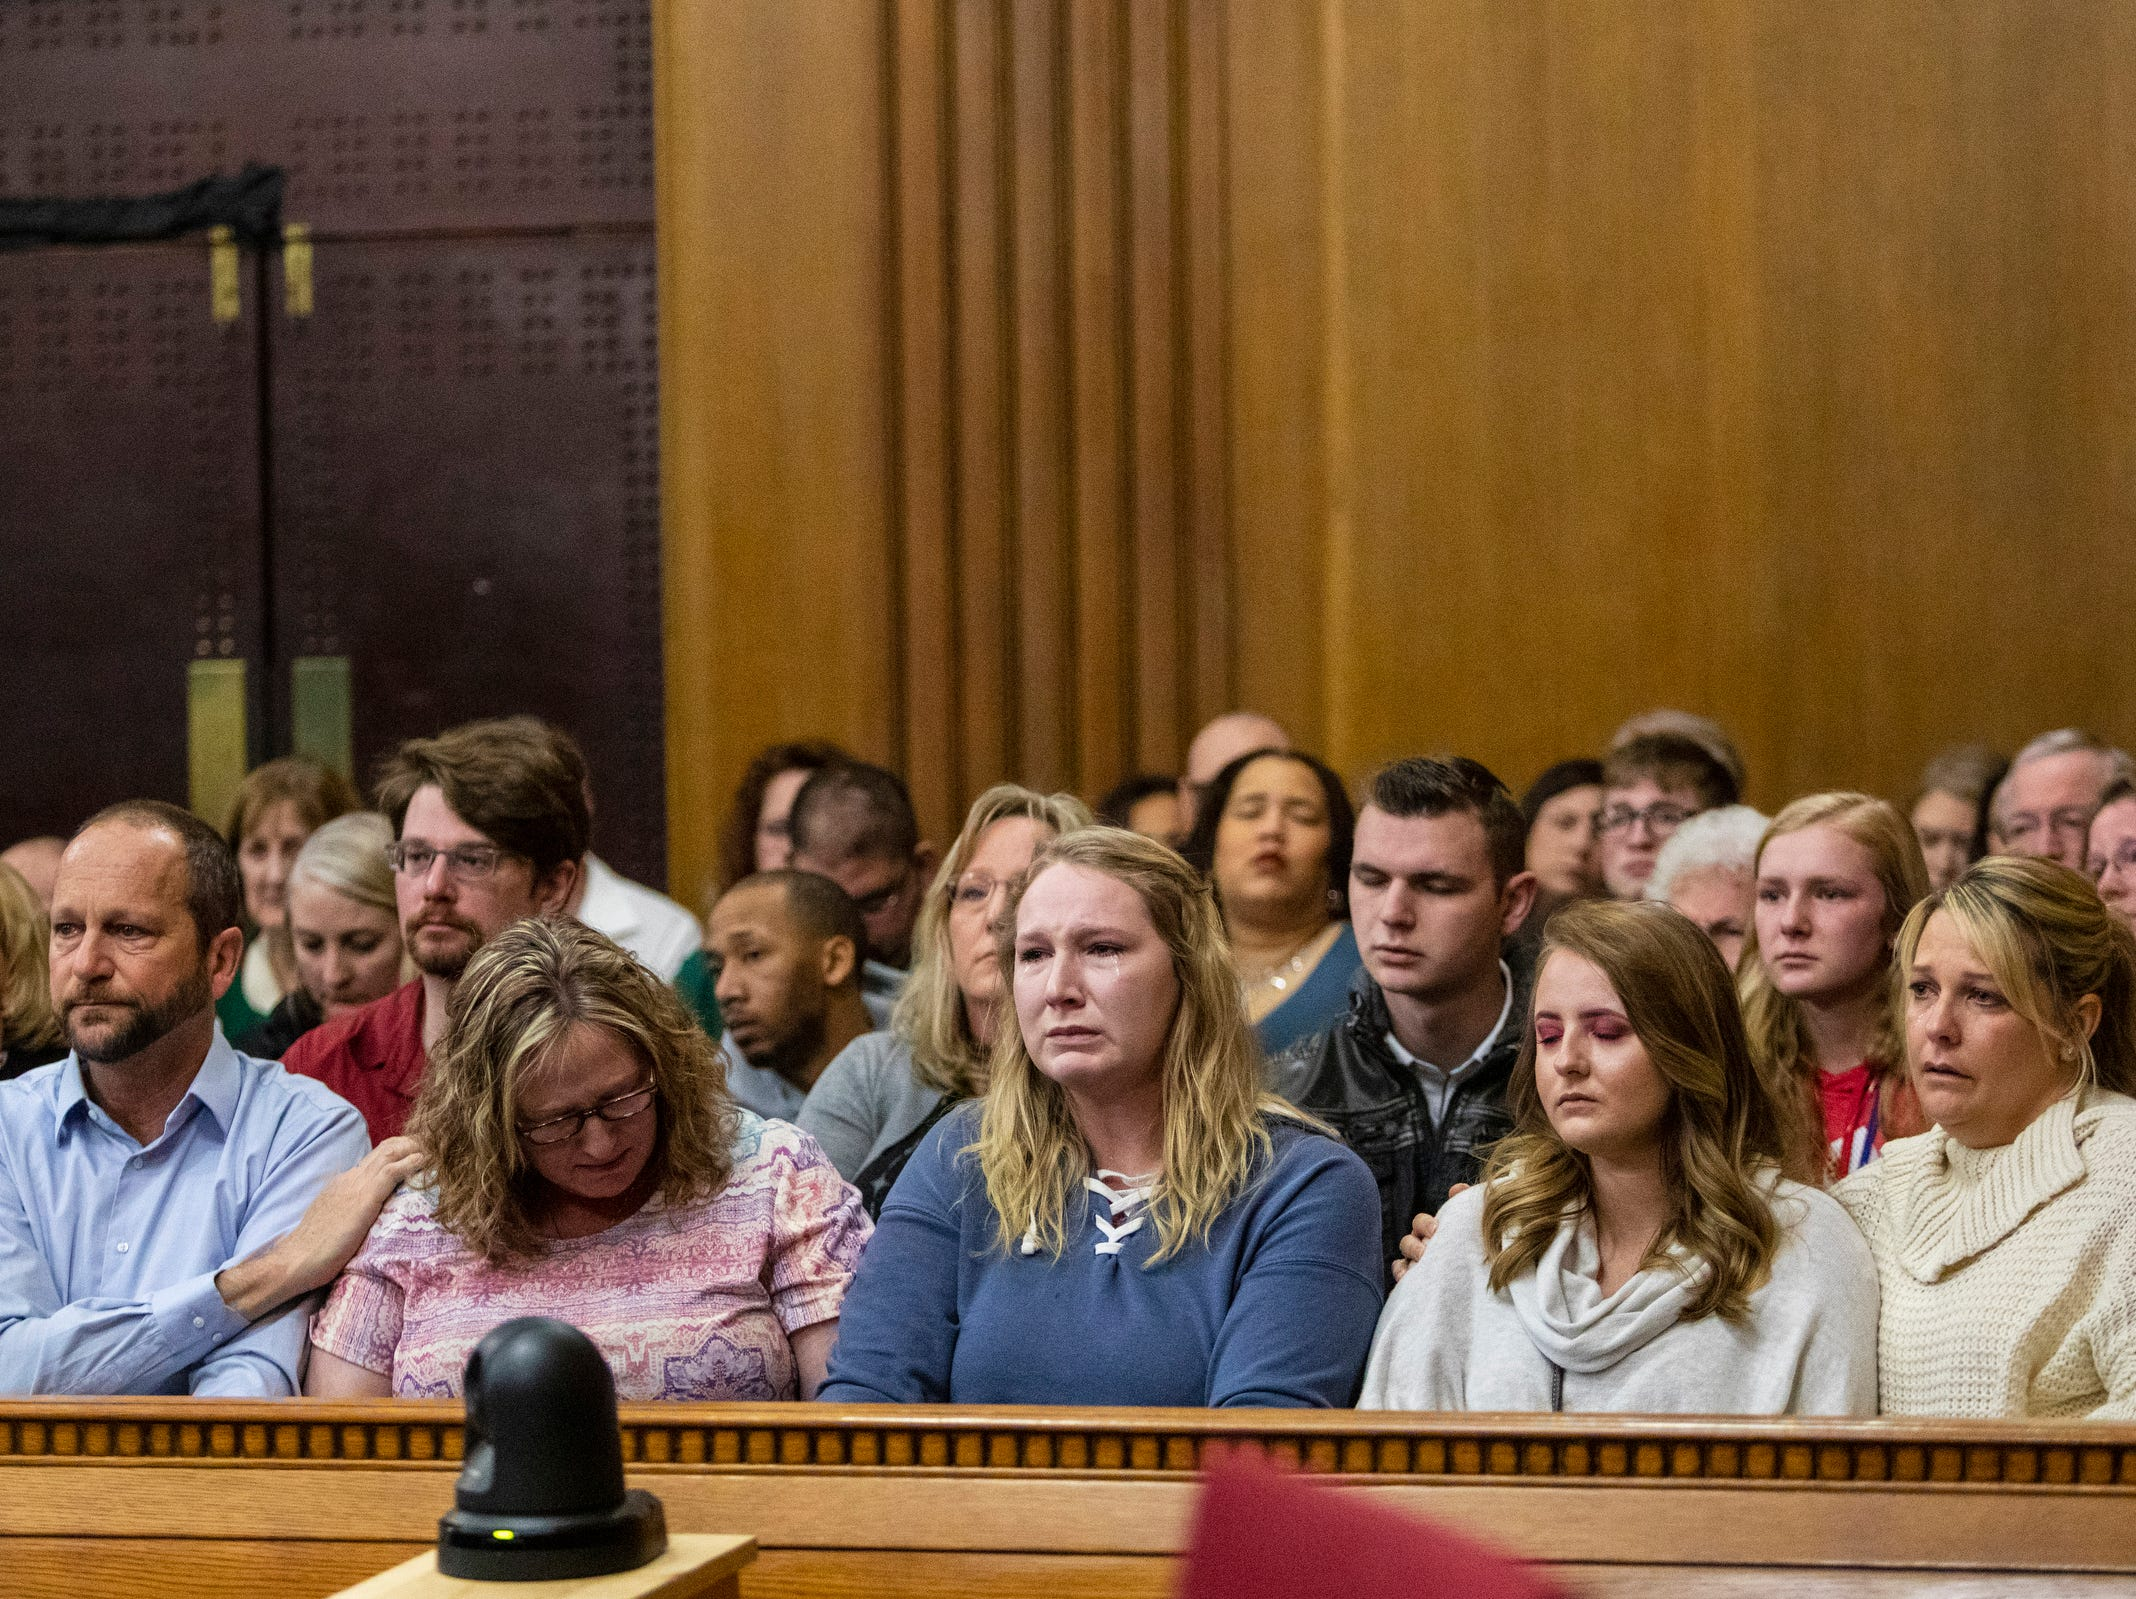 Family members pf victims react as Jason Dalton pleads guilty to six counts of murder and several other charges at the Kalamazoo County Courthouse on Monday, Jan. 7, 2019 in Kalamazoo, Michigan.  Dalton, who was driving for Uber at the time shot eight people killing six of them, on Saturday, Feb. 20, 2016. Opening statements in the trial were scheduled to begin Tuesday, Jan. 8. (Joel Bissell | MLive.com)